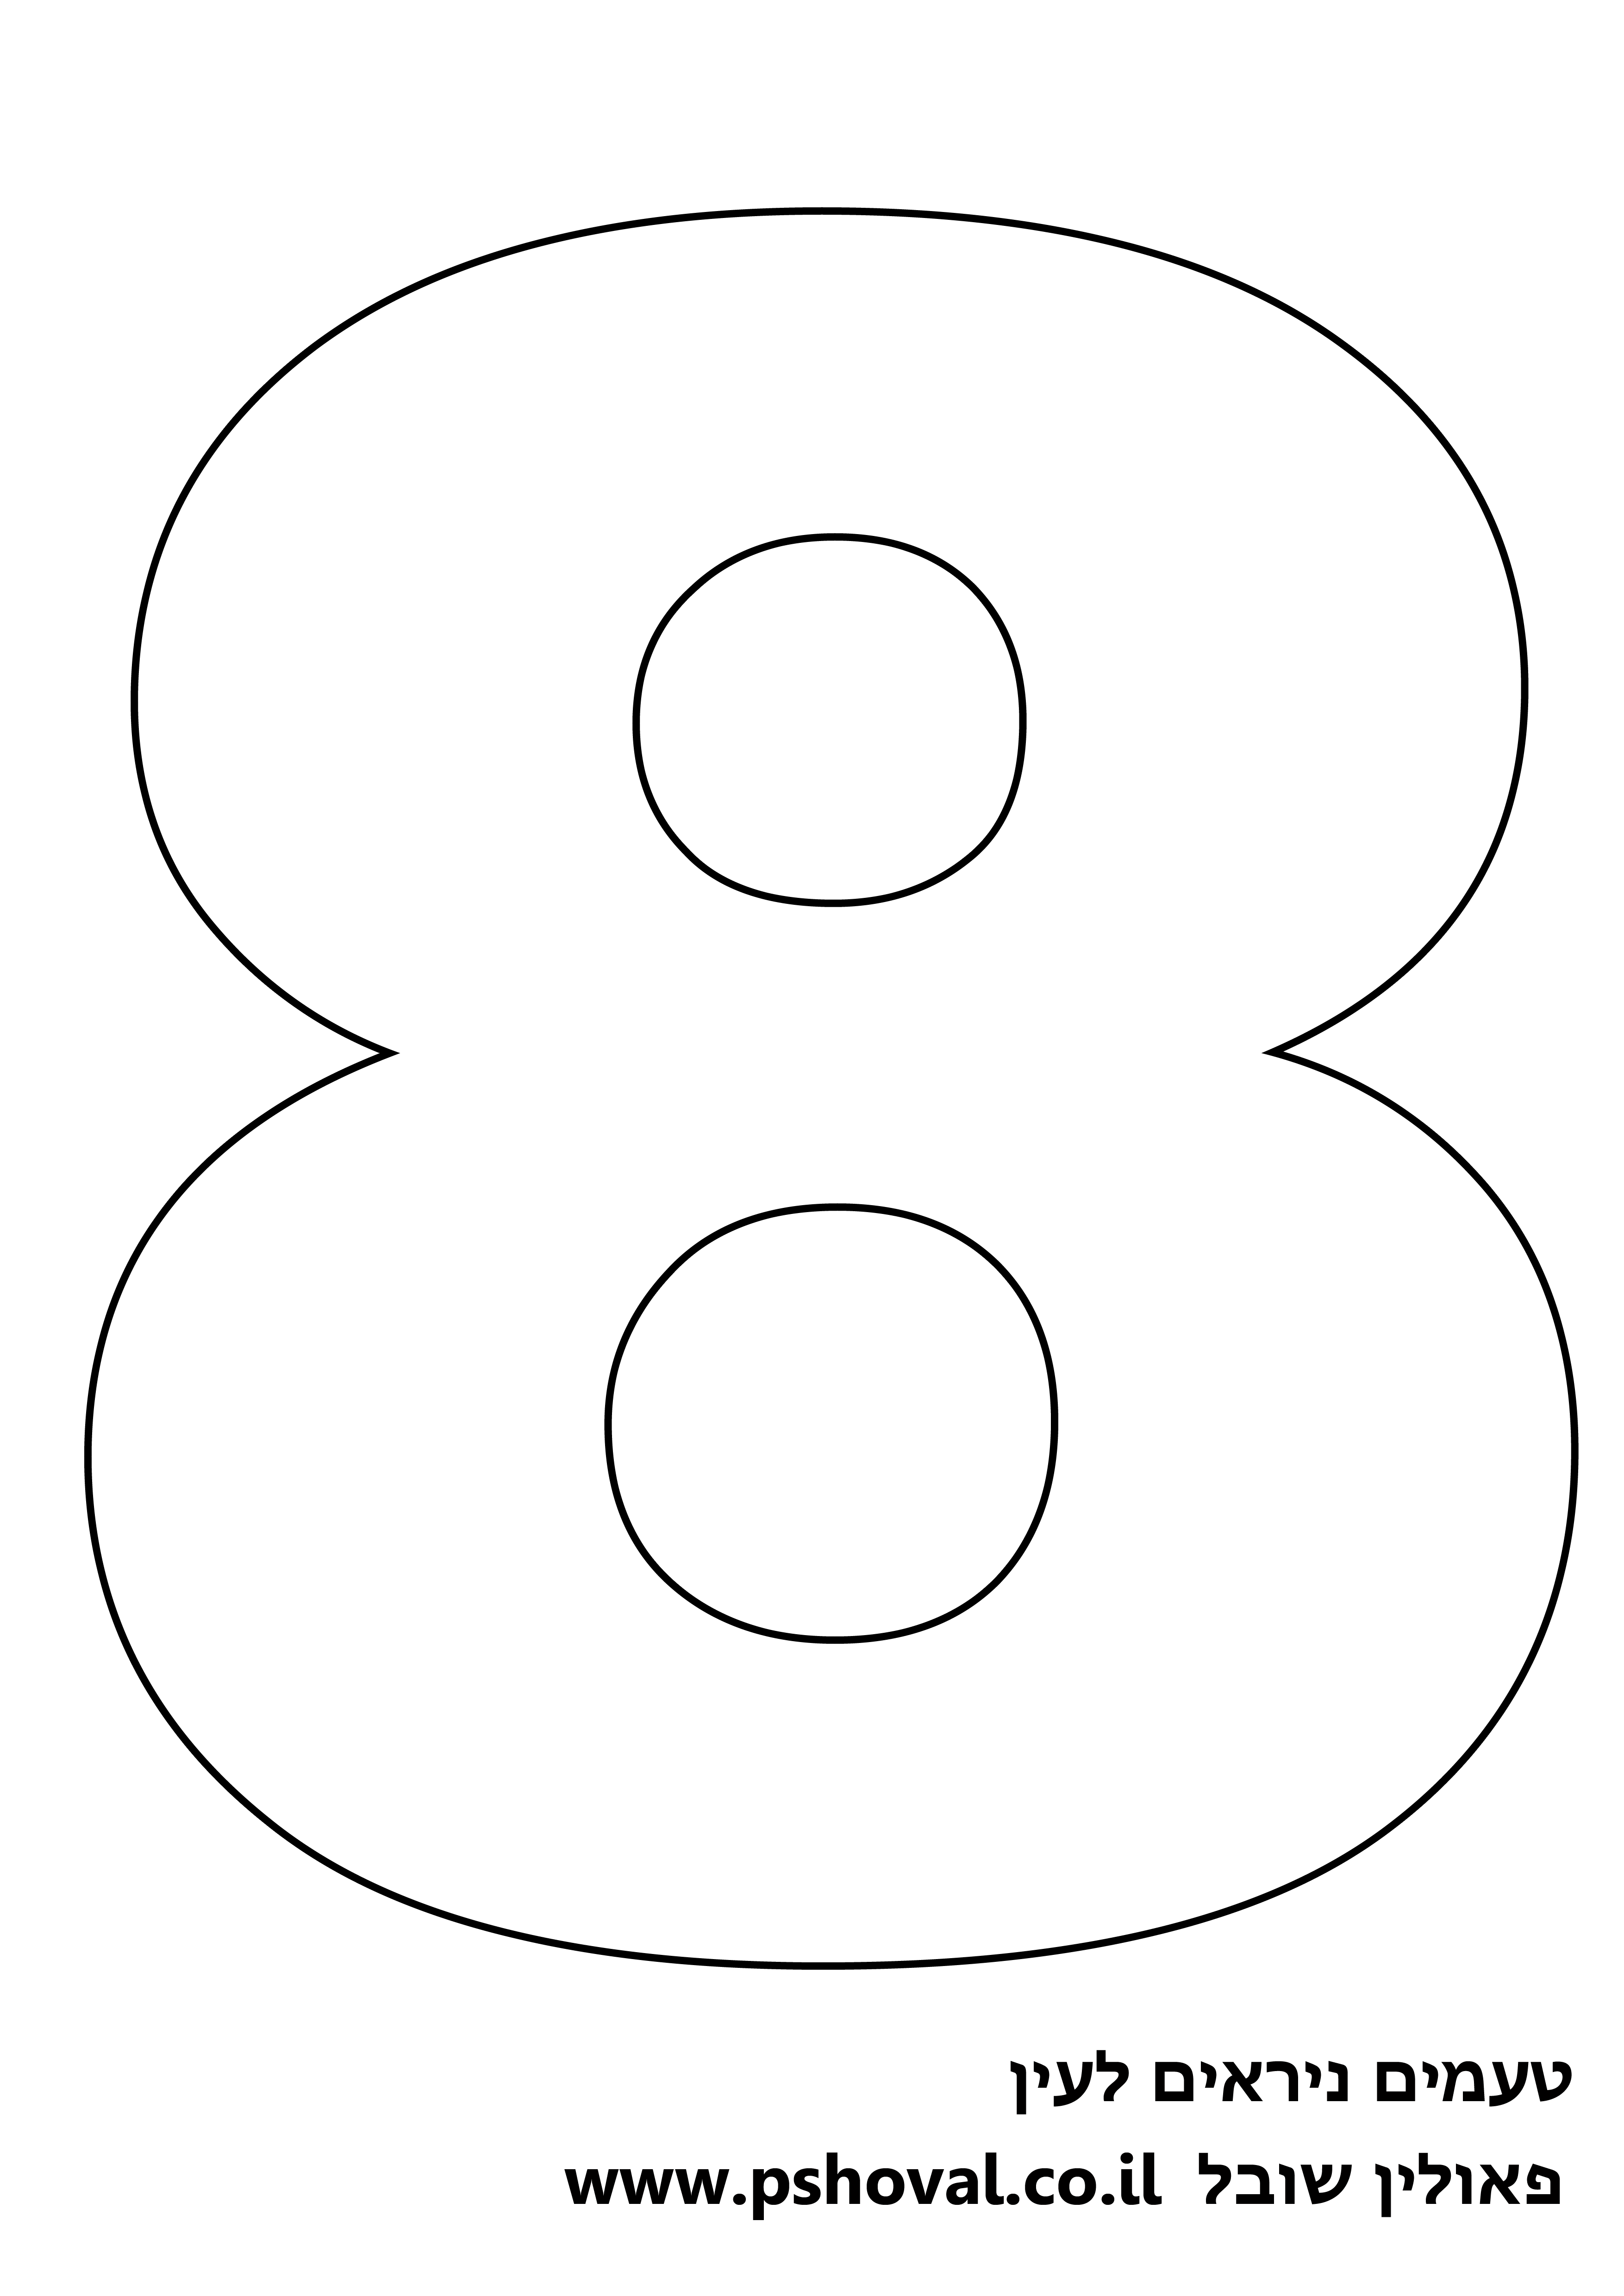 image relating to Printable Number Stencil called Absolutely free Printable Amount Stencil 8 - FOODSTYLEPRO טעמים נראים לעין